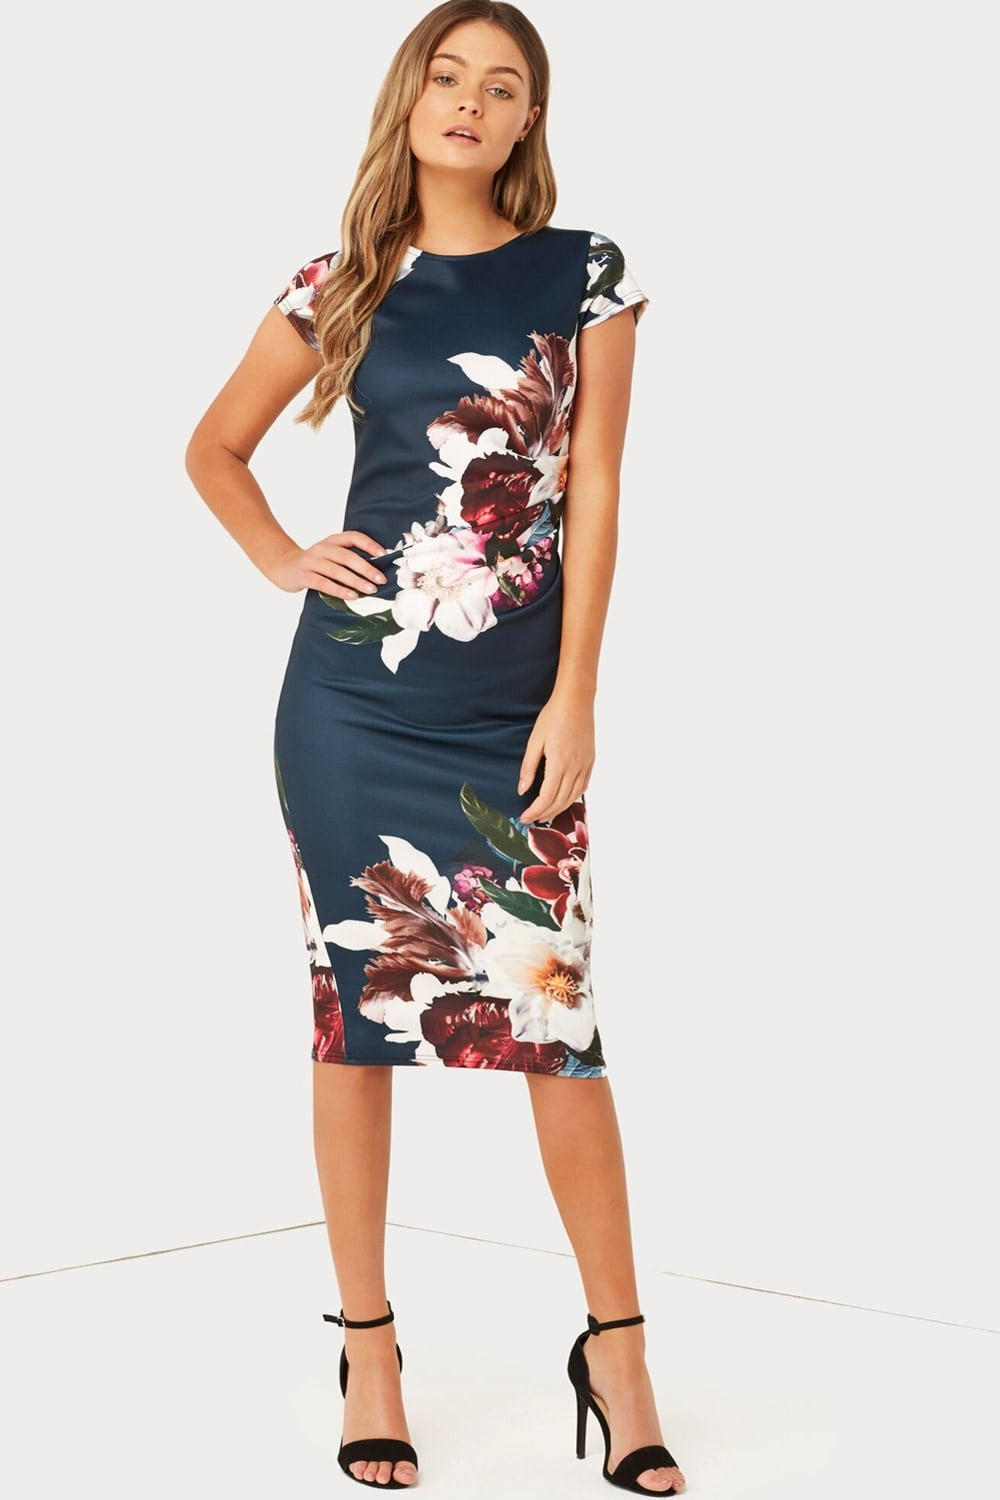 Outlet Girls On Film Print Bodycon Dress Outlet Girls On